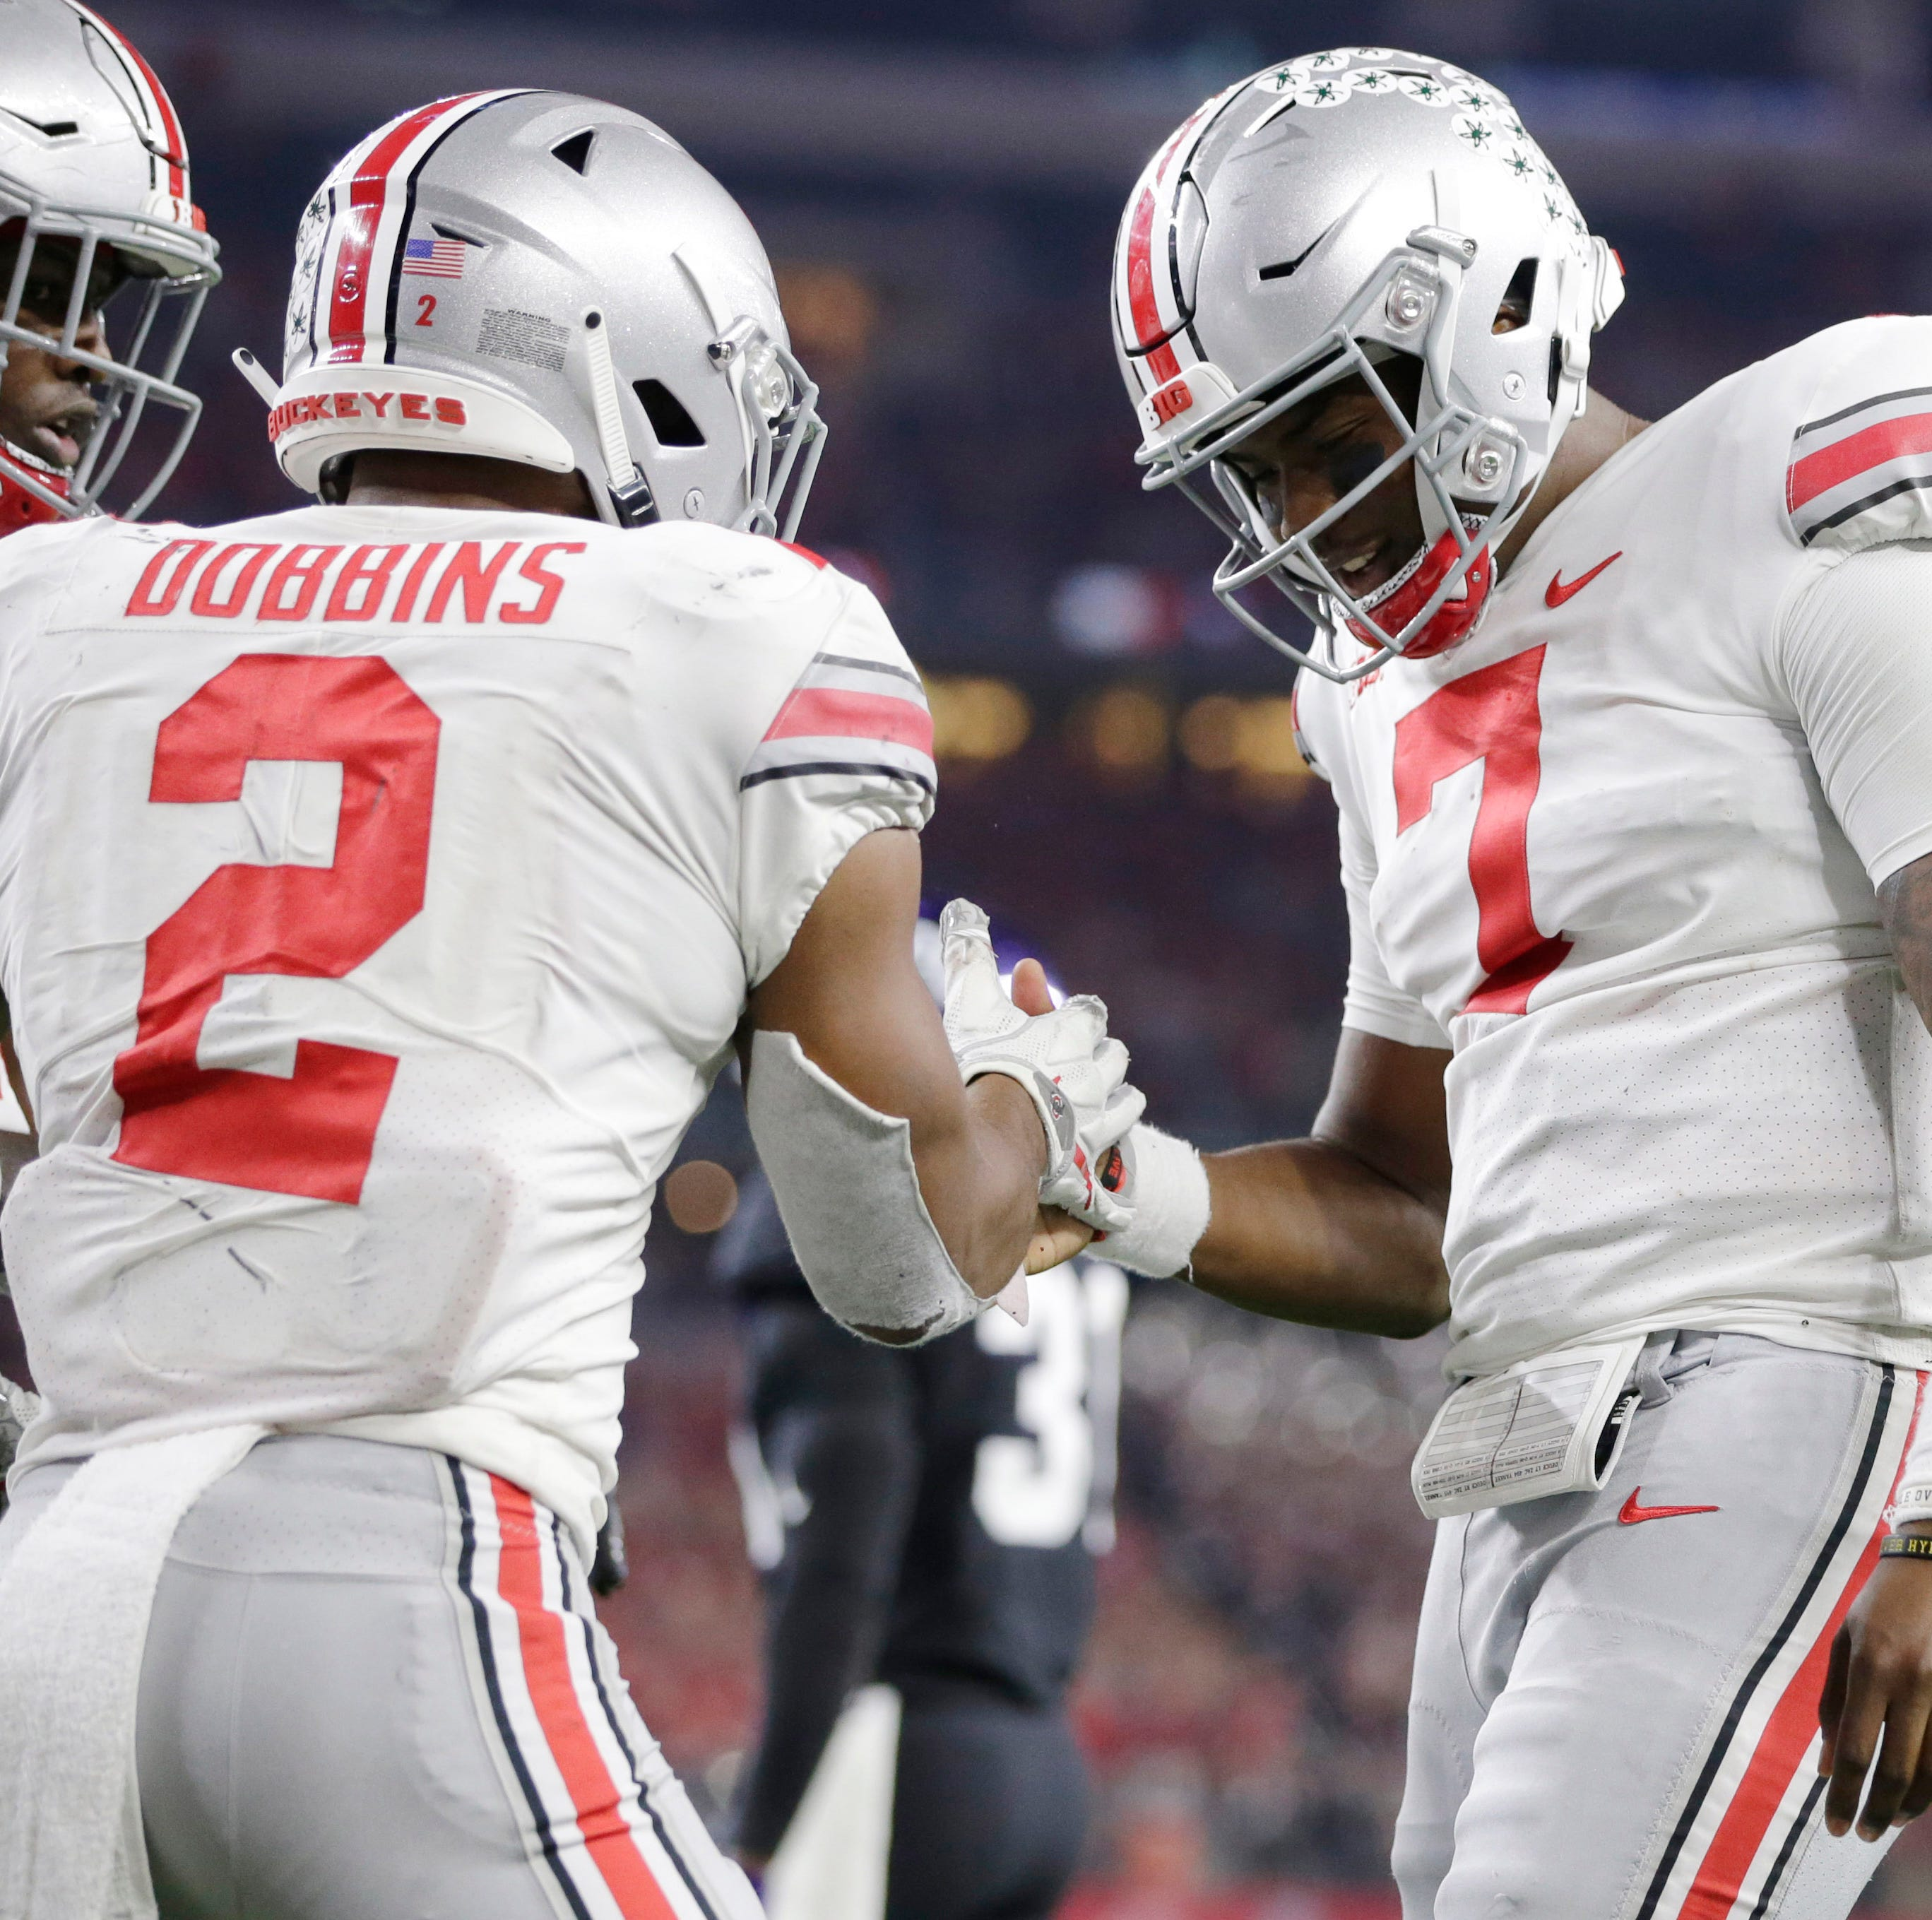 Ohio State quarterback Dwayne Haskins celebrates his fourth quarter touchdown run with tailback J.K. Dobbins.